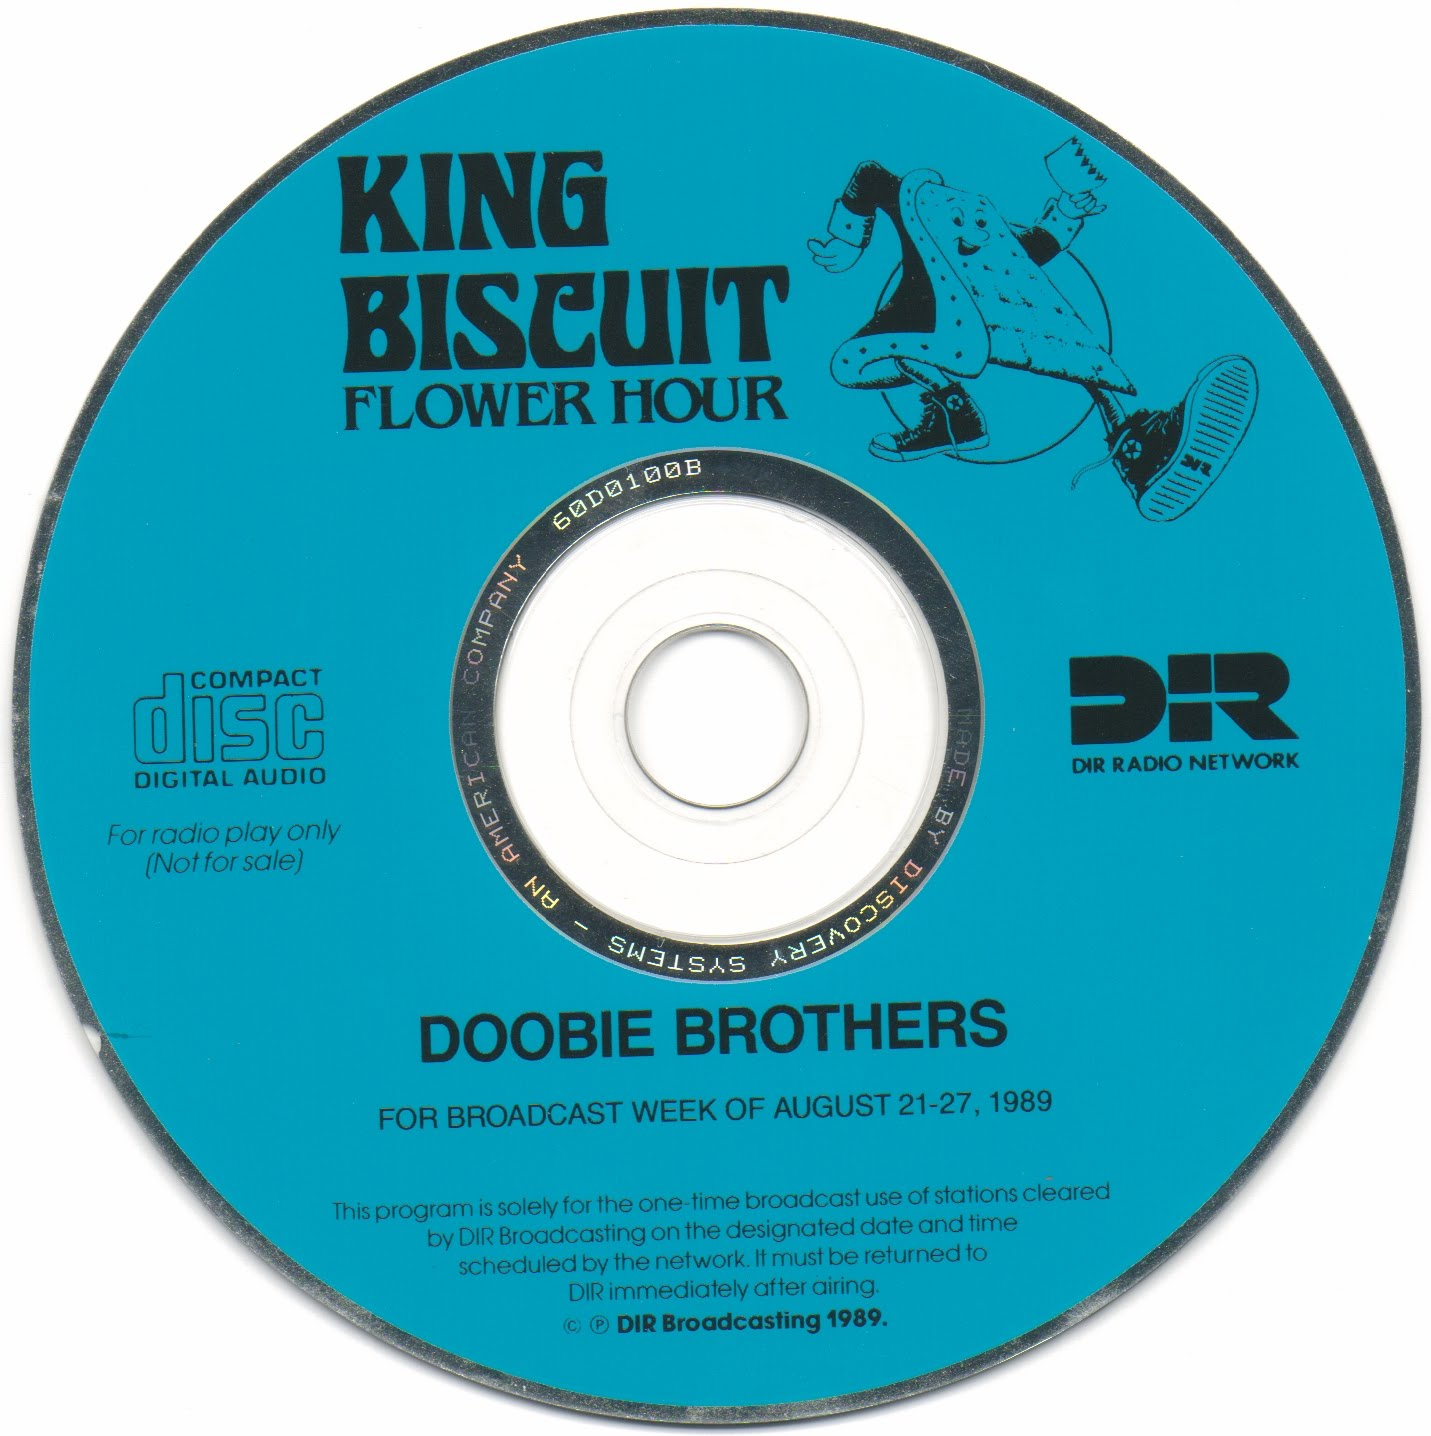 D & P s Bootleg Tunz World Doobie Brothers King Biscuit